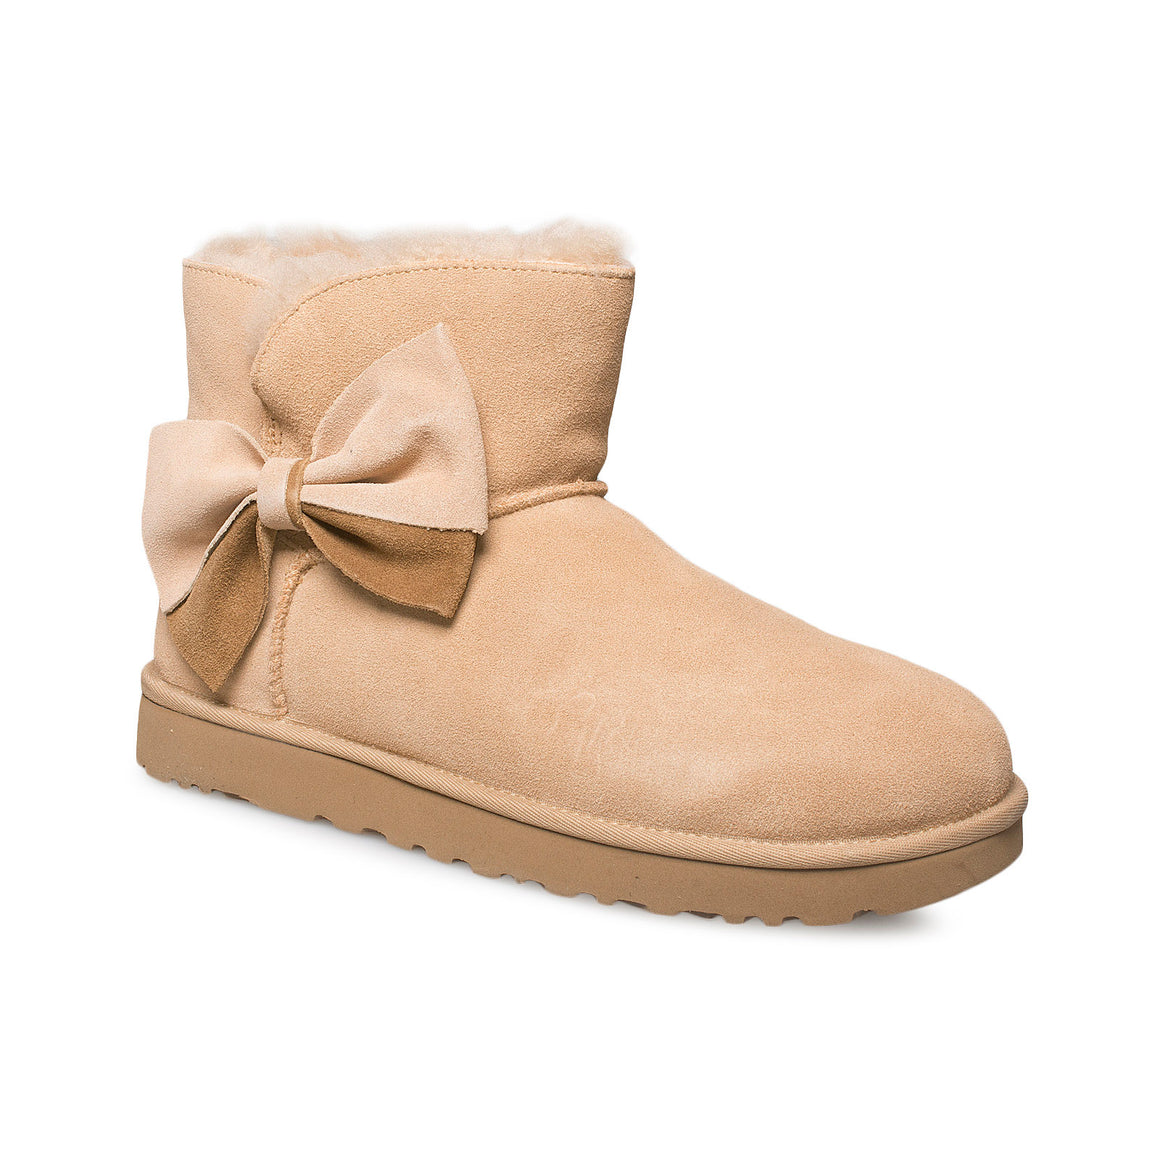 UGG Classic Mini Two Tone Bow Bronzer Boots - Women's